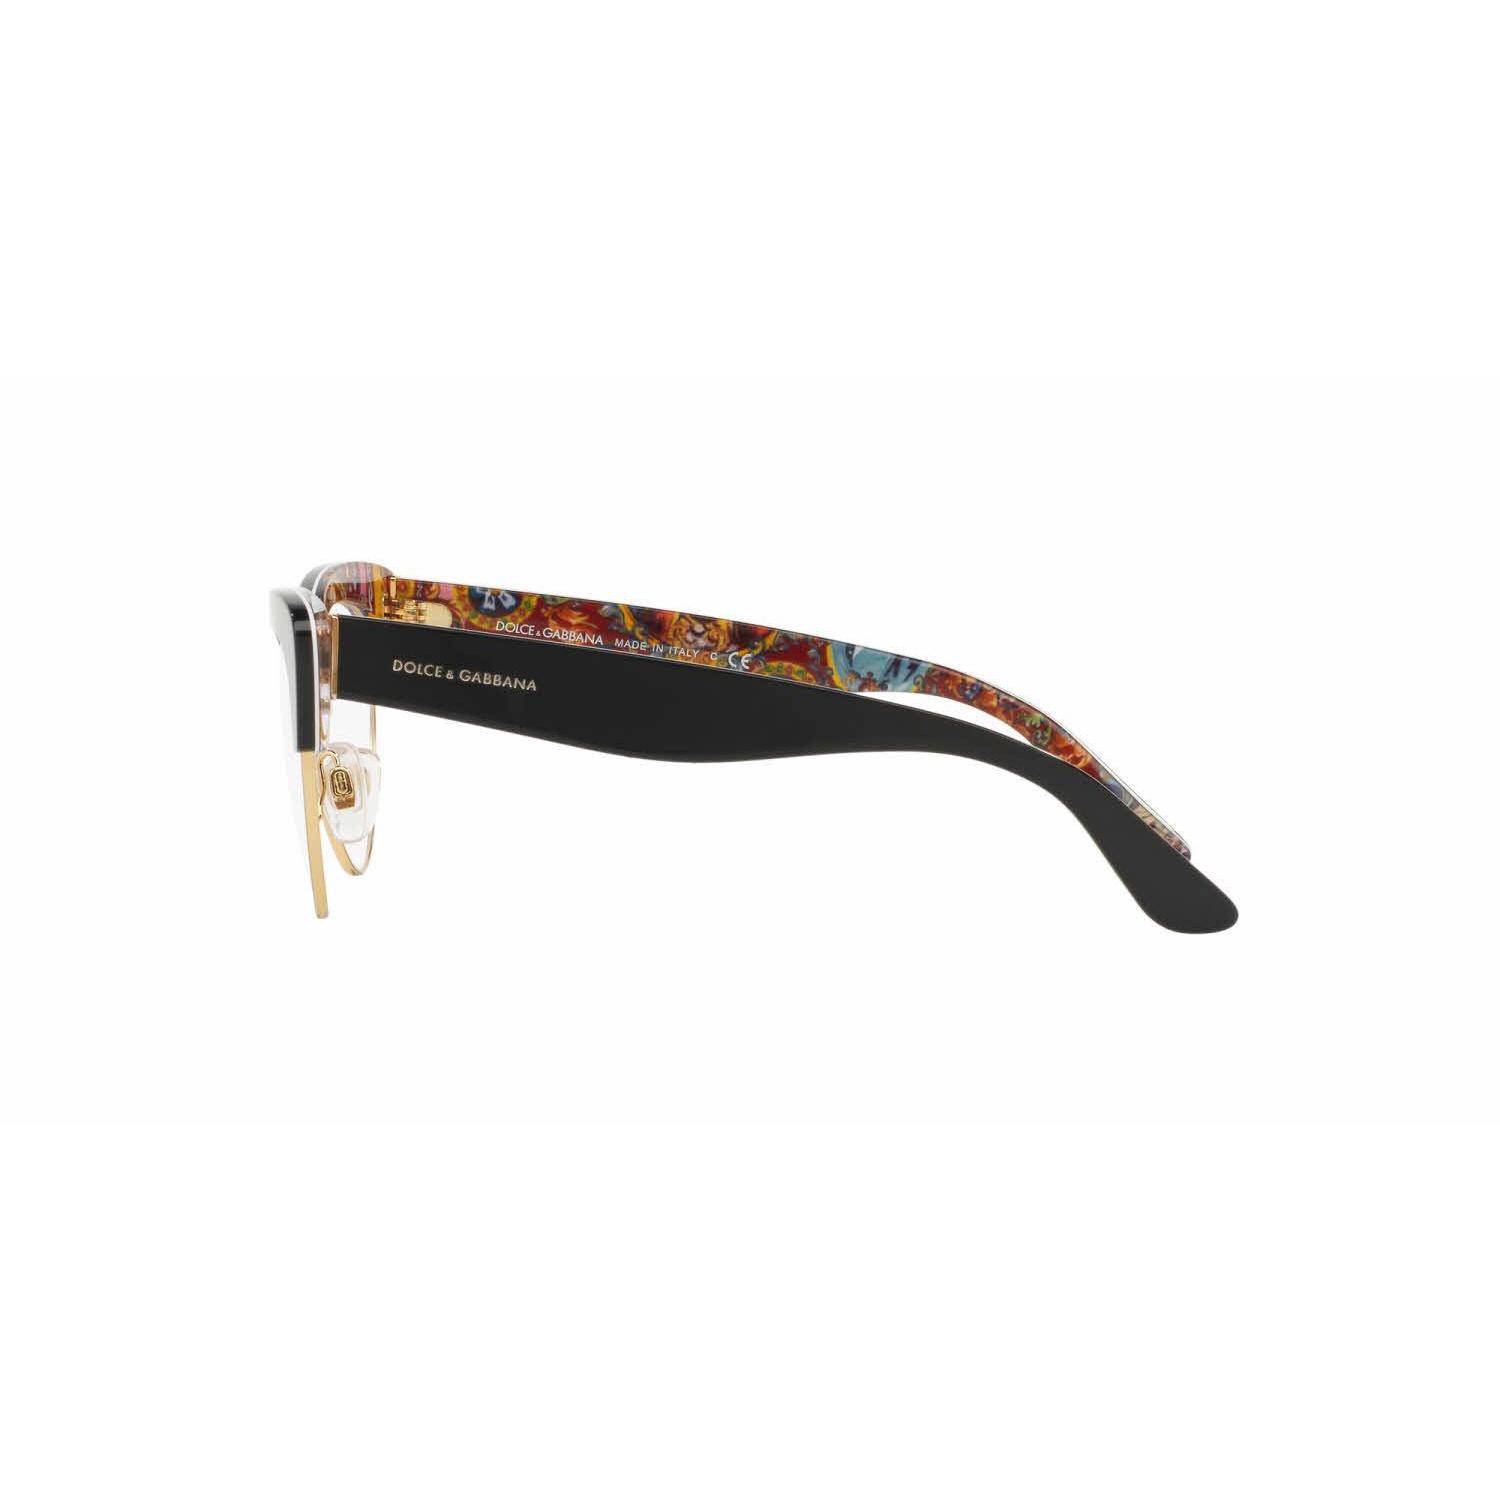 6f650d59bed Shop Dolce   Gabbana Womens DG3247 3033 Plastic Cat Eye Eyeglasses - Free  Shipping Today - Overstock - 13613746